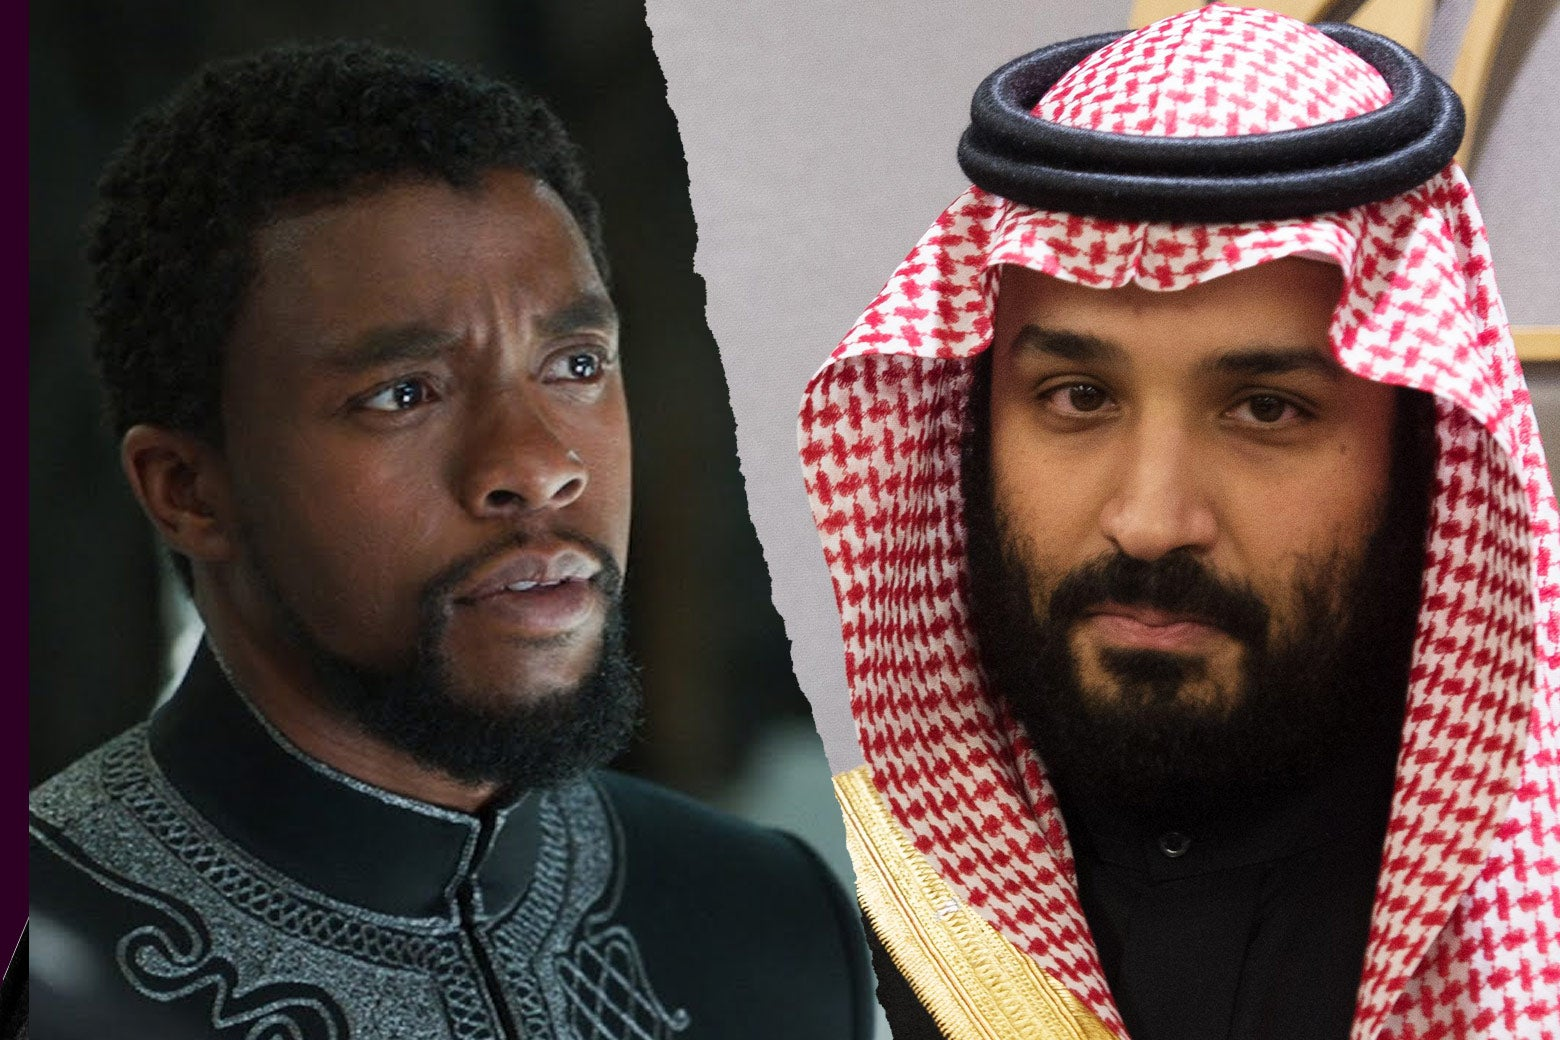 Chadwick as T'Challa in Black Panther and Prince Mohammed bin Salman Al Saud, Crown Prince, Kingdom of Saudi Arabia.